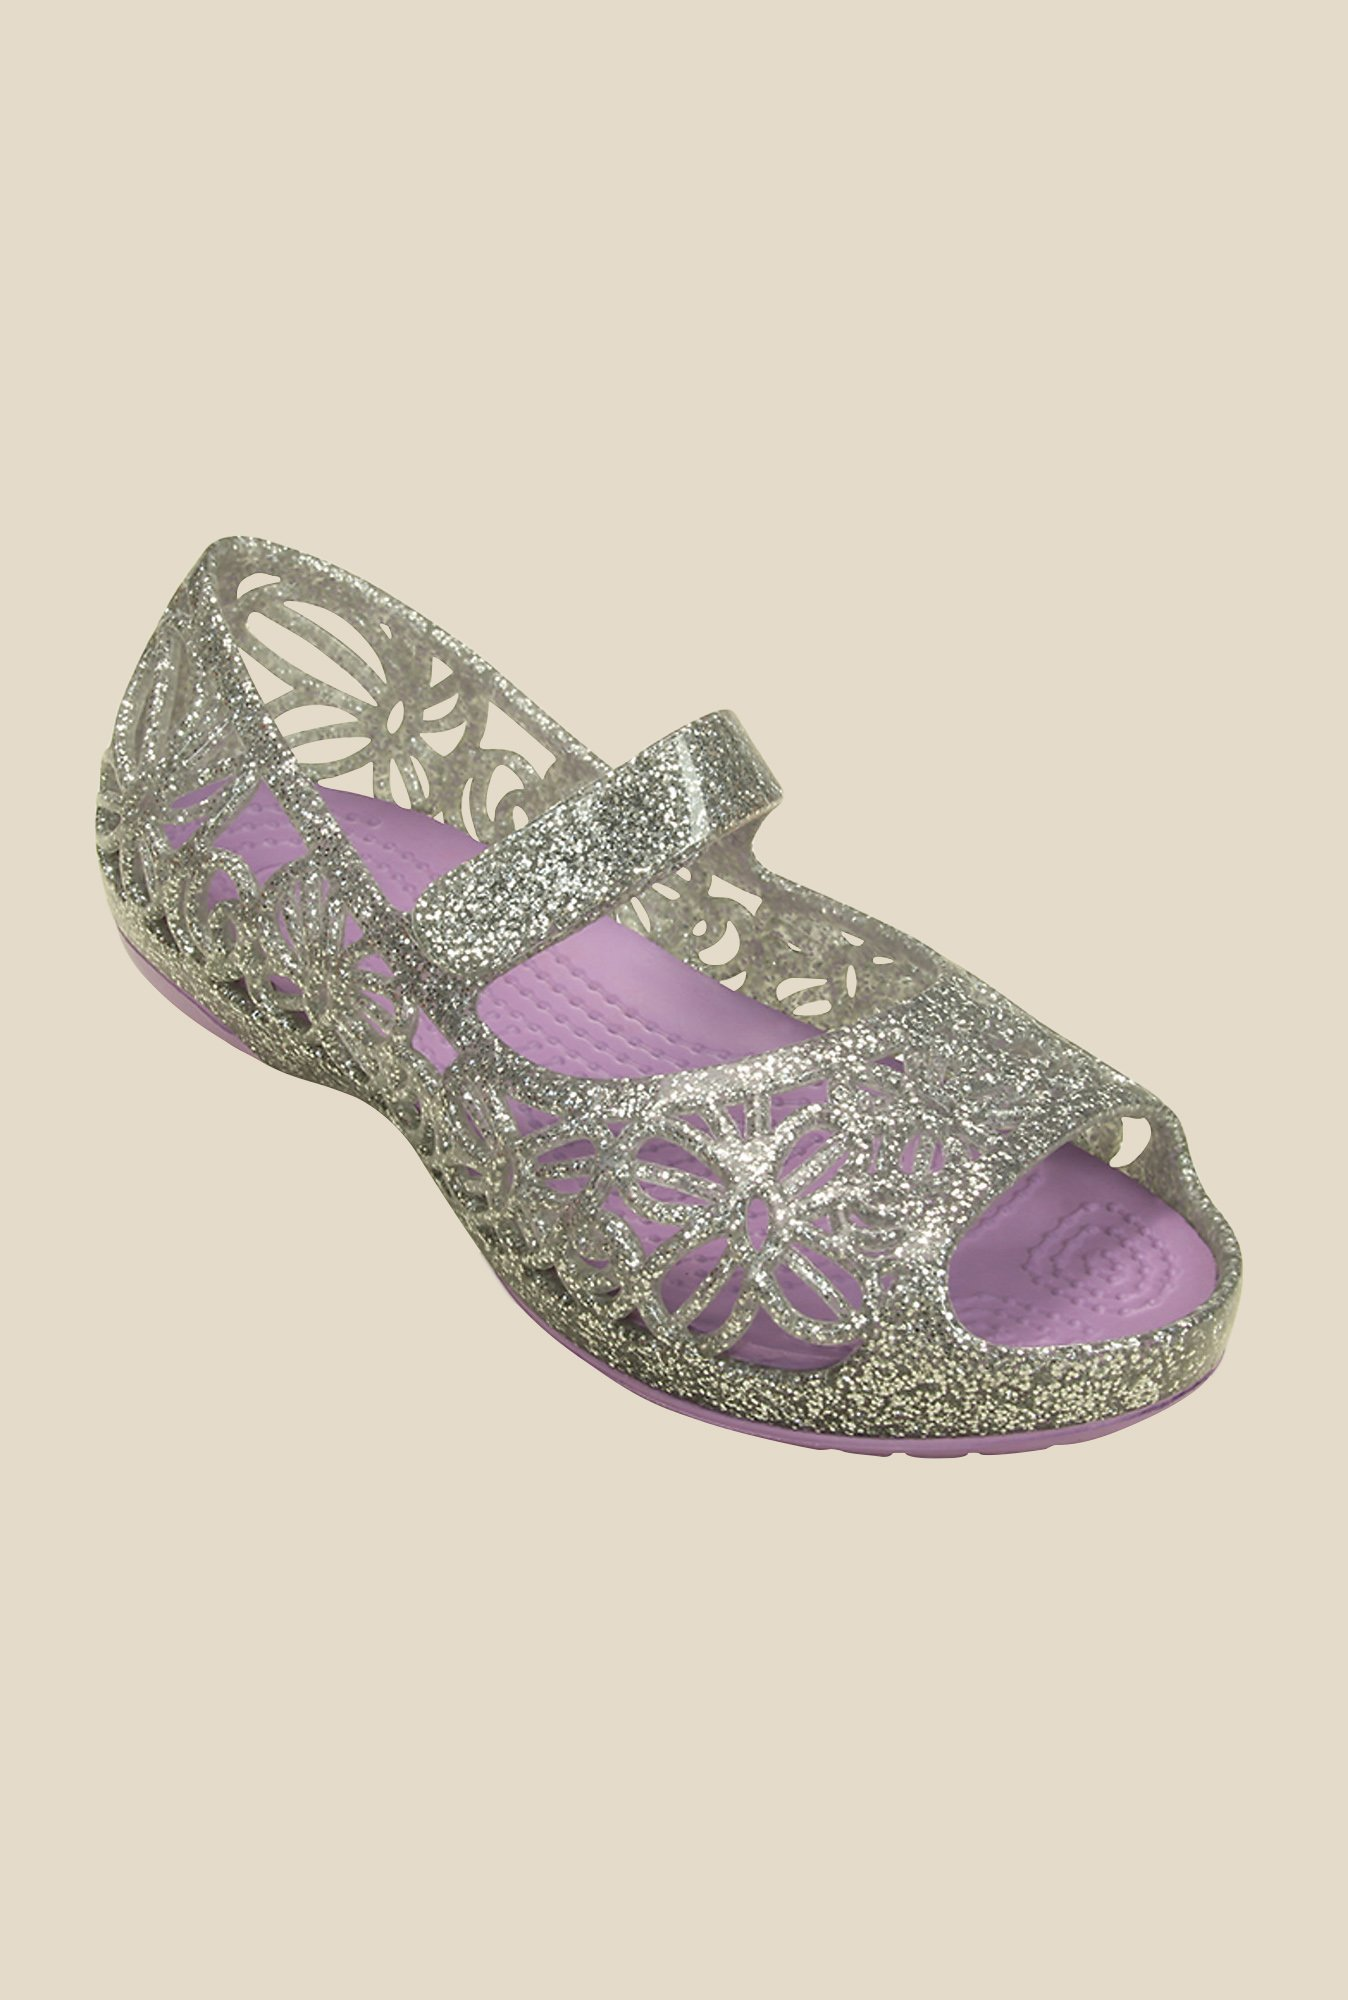 Crocs Isabella Glitter PS Silver & Iris Mary Jane Shoes